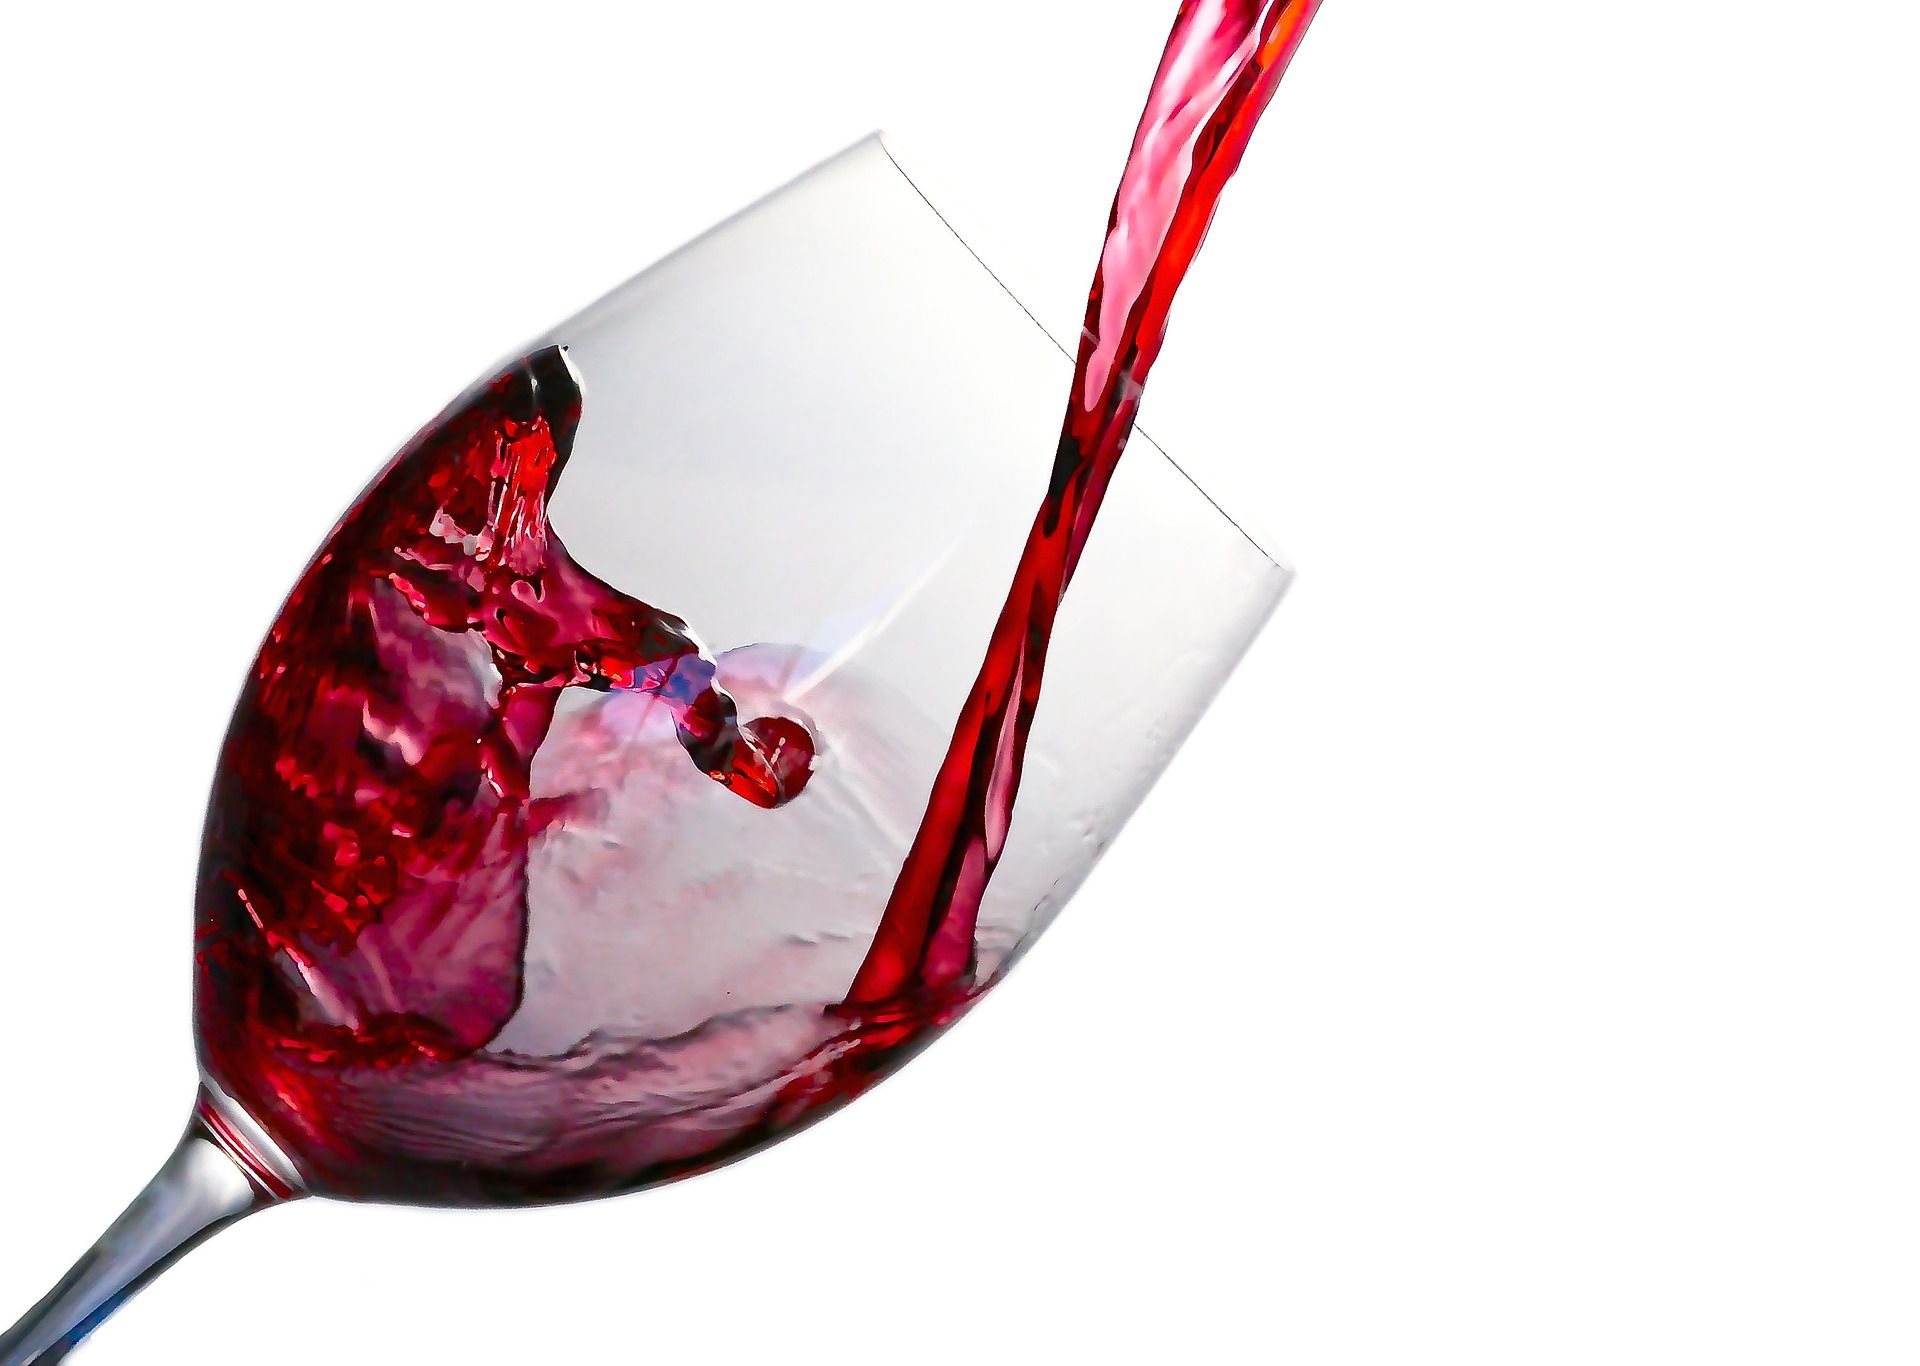 Why does red wine make me feel sick? | Popular Science